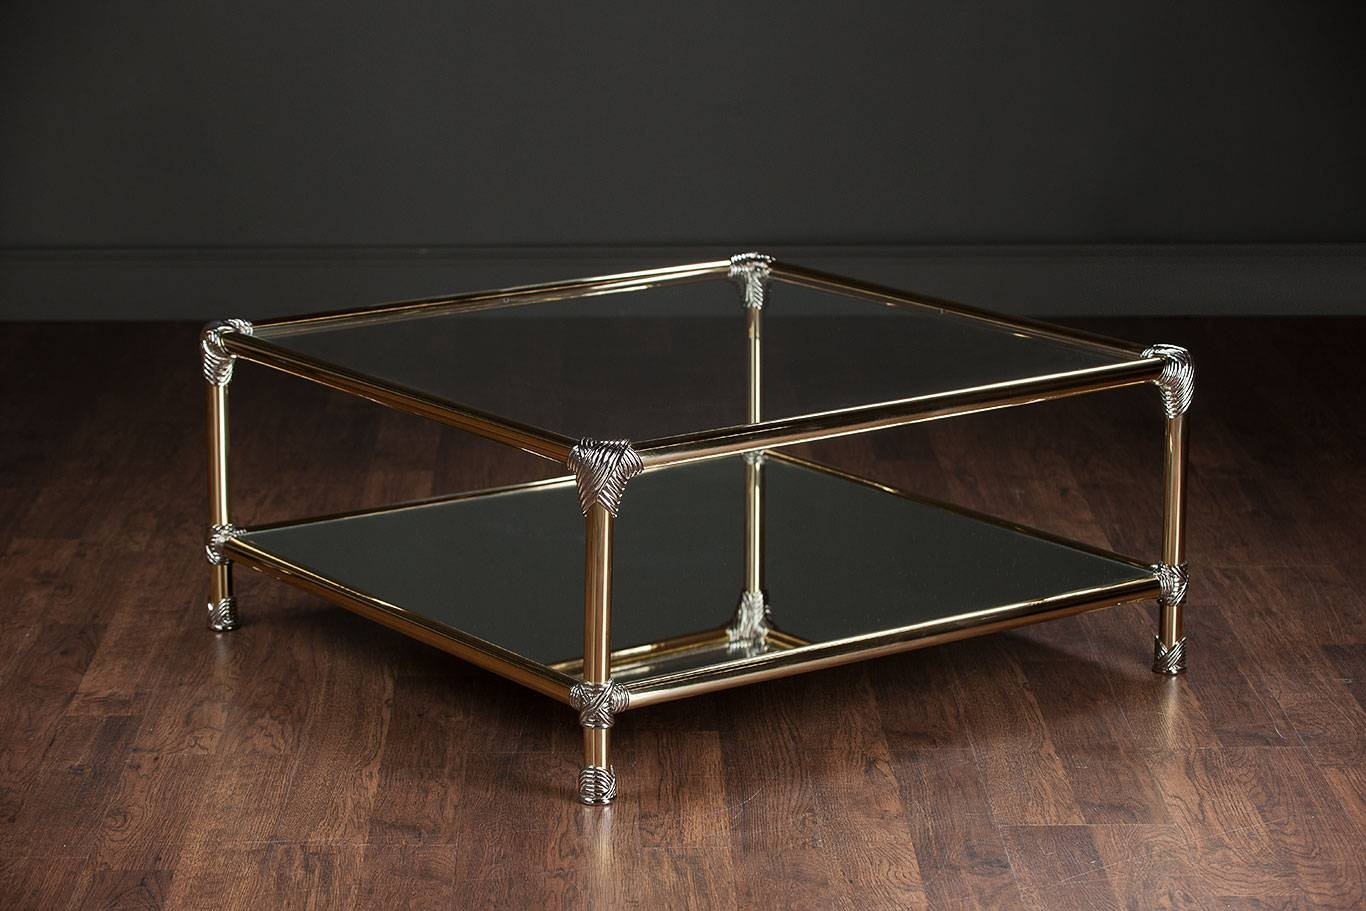 Vintage Brass And Chrome Coffee Table - Mecox Gardens for Antique Brass Glass Coffee Tables (Image 33 of 37)